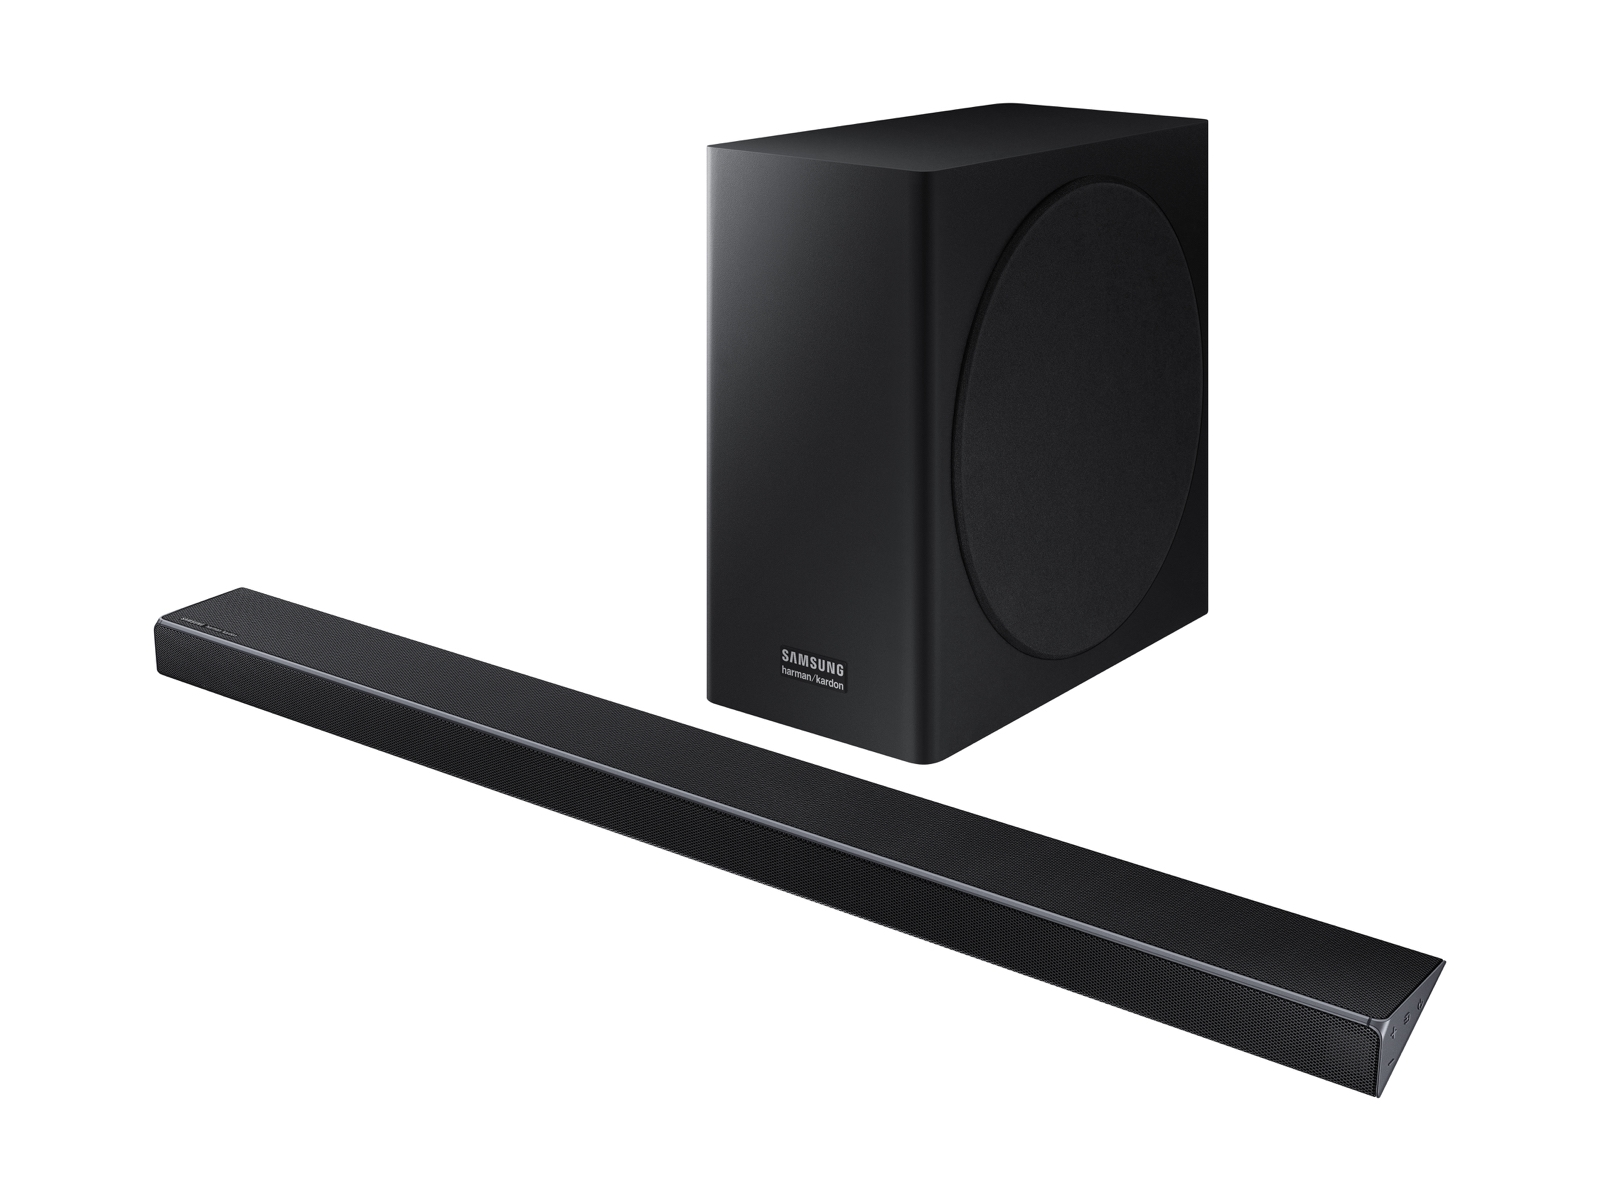 HW-Q70R Samsung Harman Kardon Soundbar with Dolby Atmos